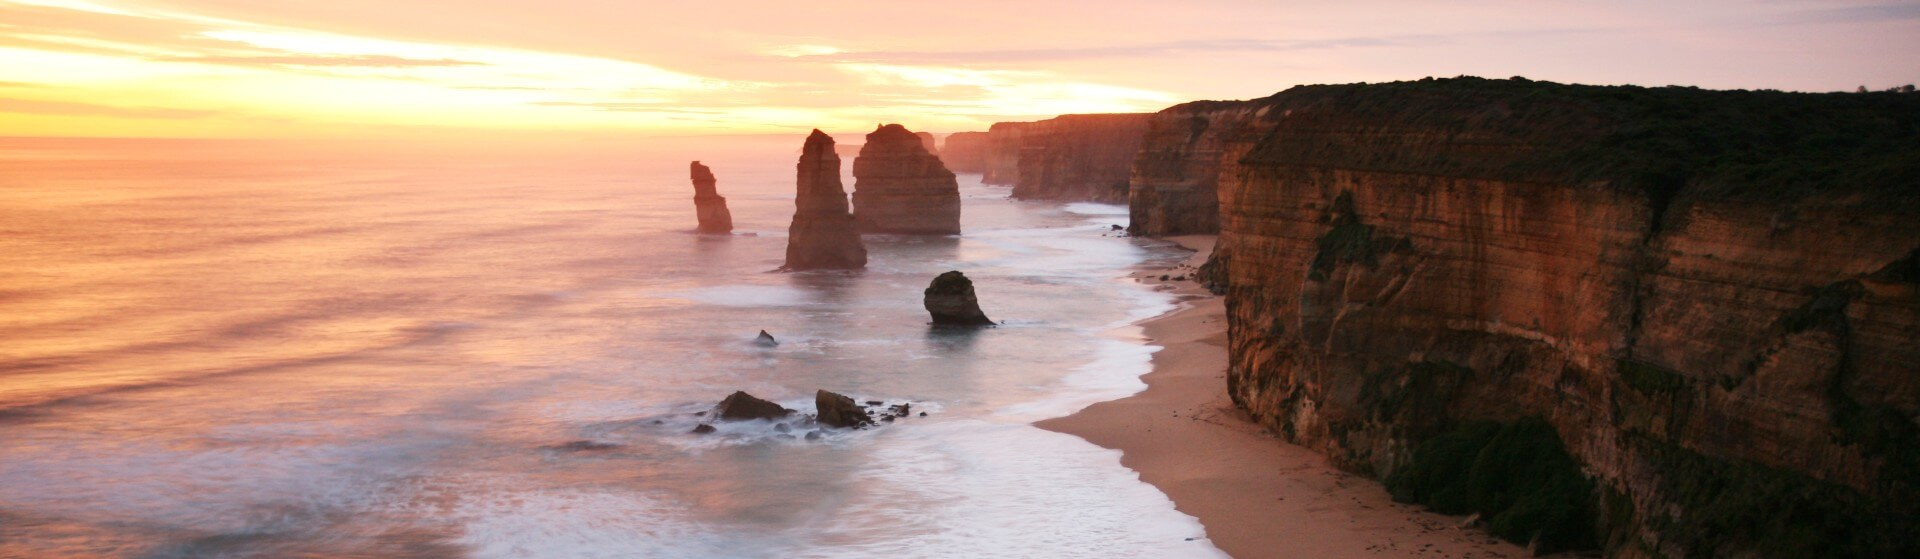 Melbourne Private Tours Tour to Great Ocean Road and 12 Apostles